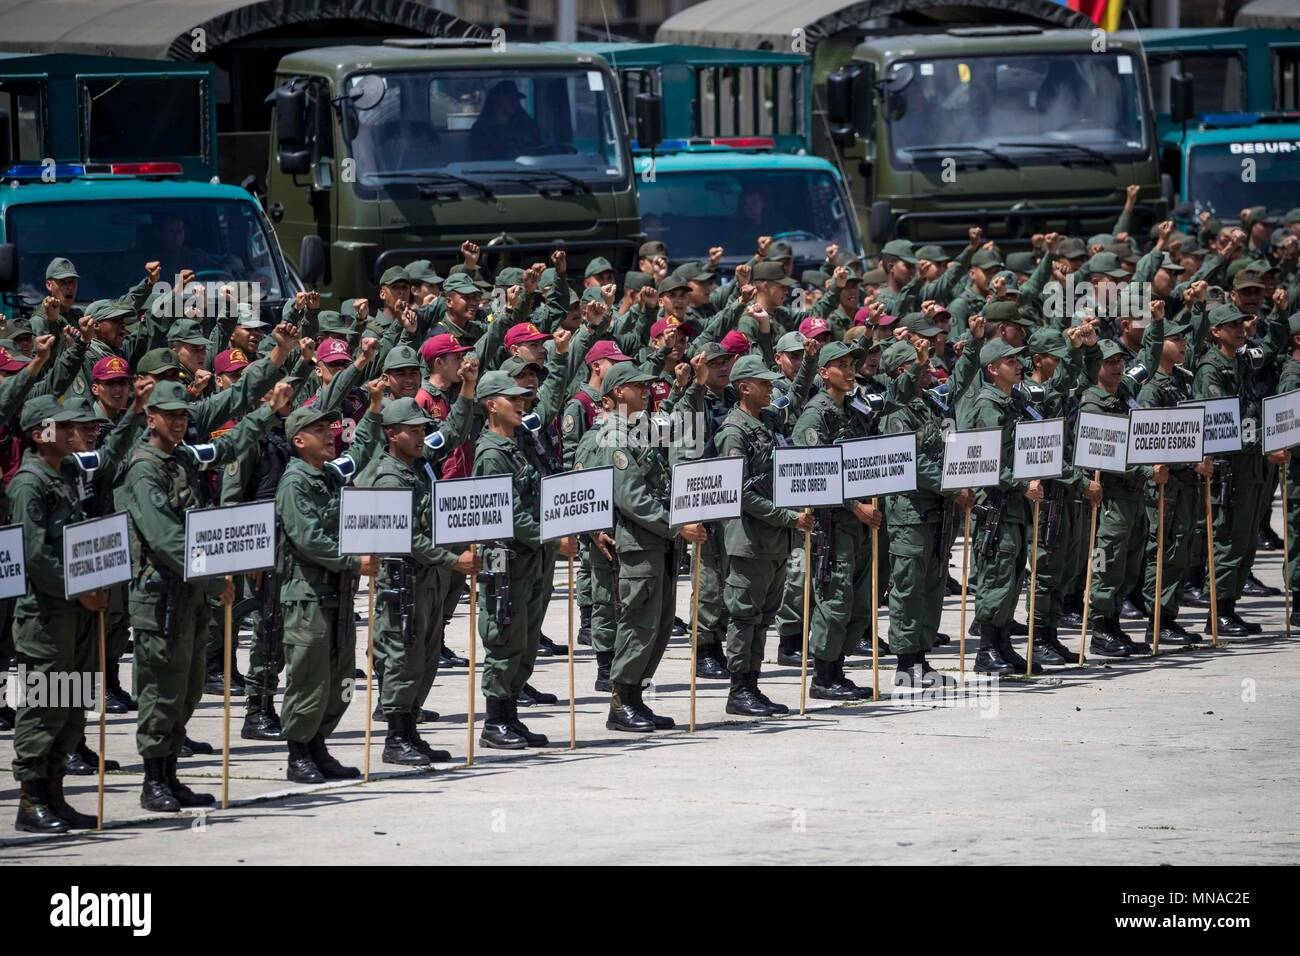 Members of the National Bolivarian Armed Forces during the security deployment for next Sunday's presidential election in Caracas, Venezuela, 15 May 2018. Over 300 thousand public servants will participate in the Plan Republic for next 20 May's presidential election. EFE/Miguel Gutierrez - Stock Image